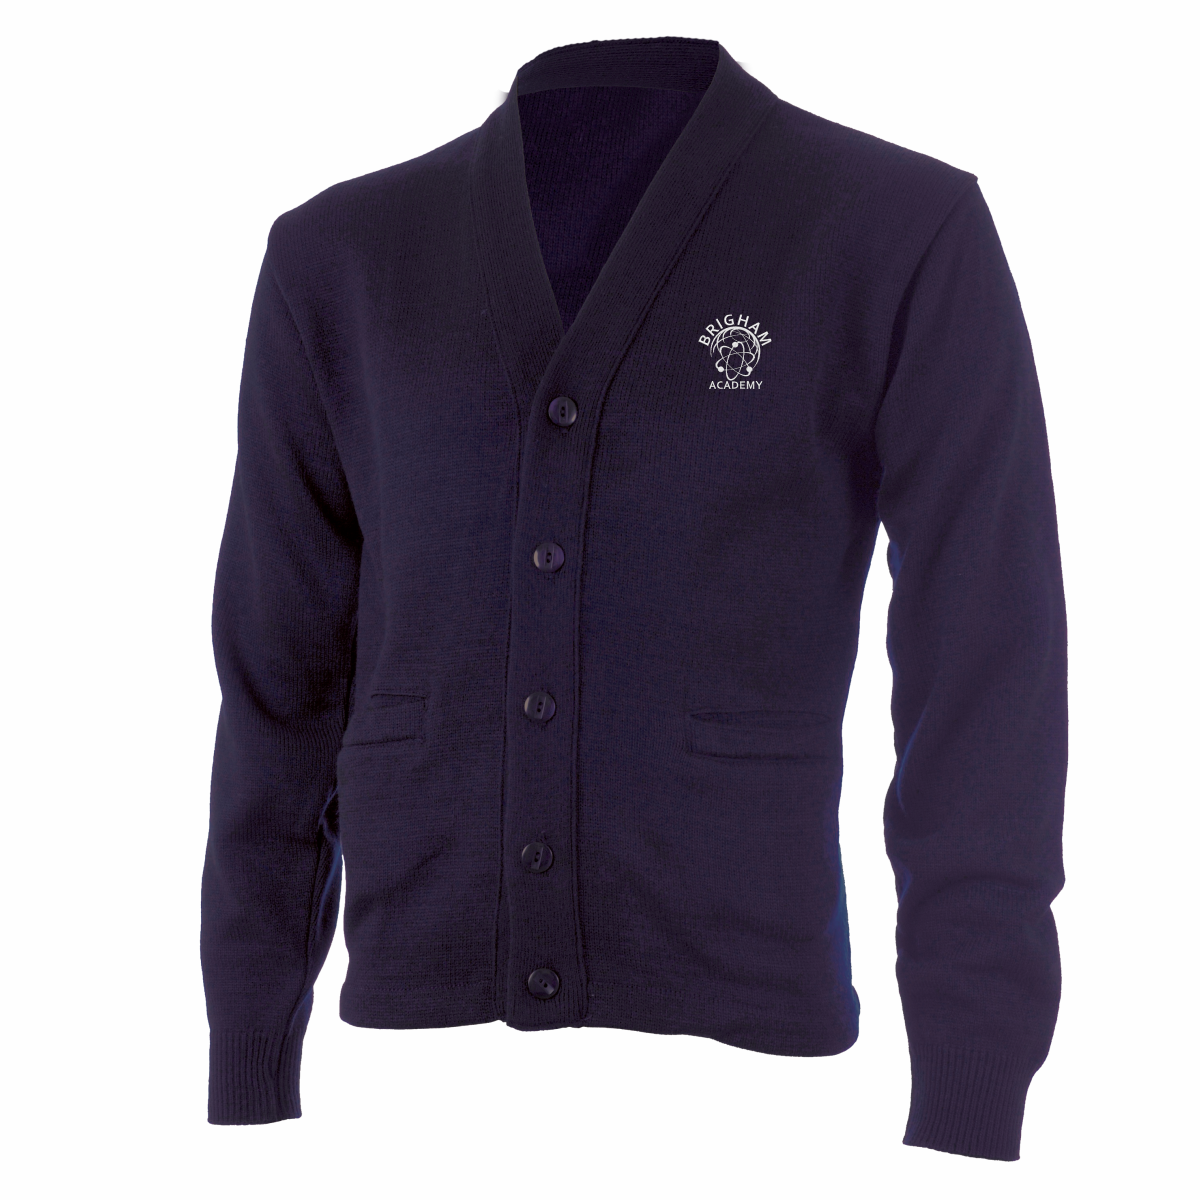 Brigham Academy Cardigan Sweater - NAVY (Youth - Adult) - DISCONTINUED